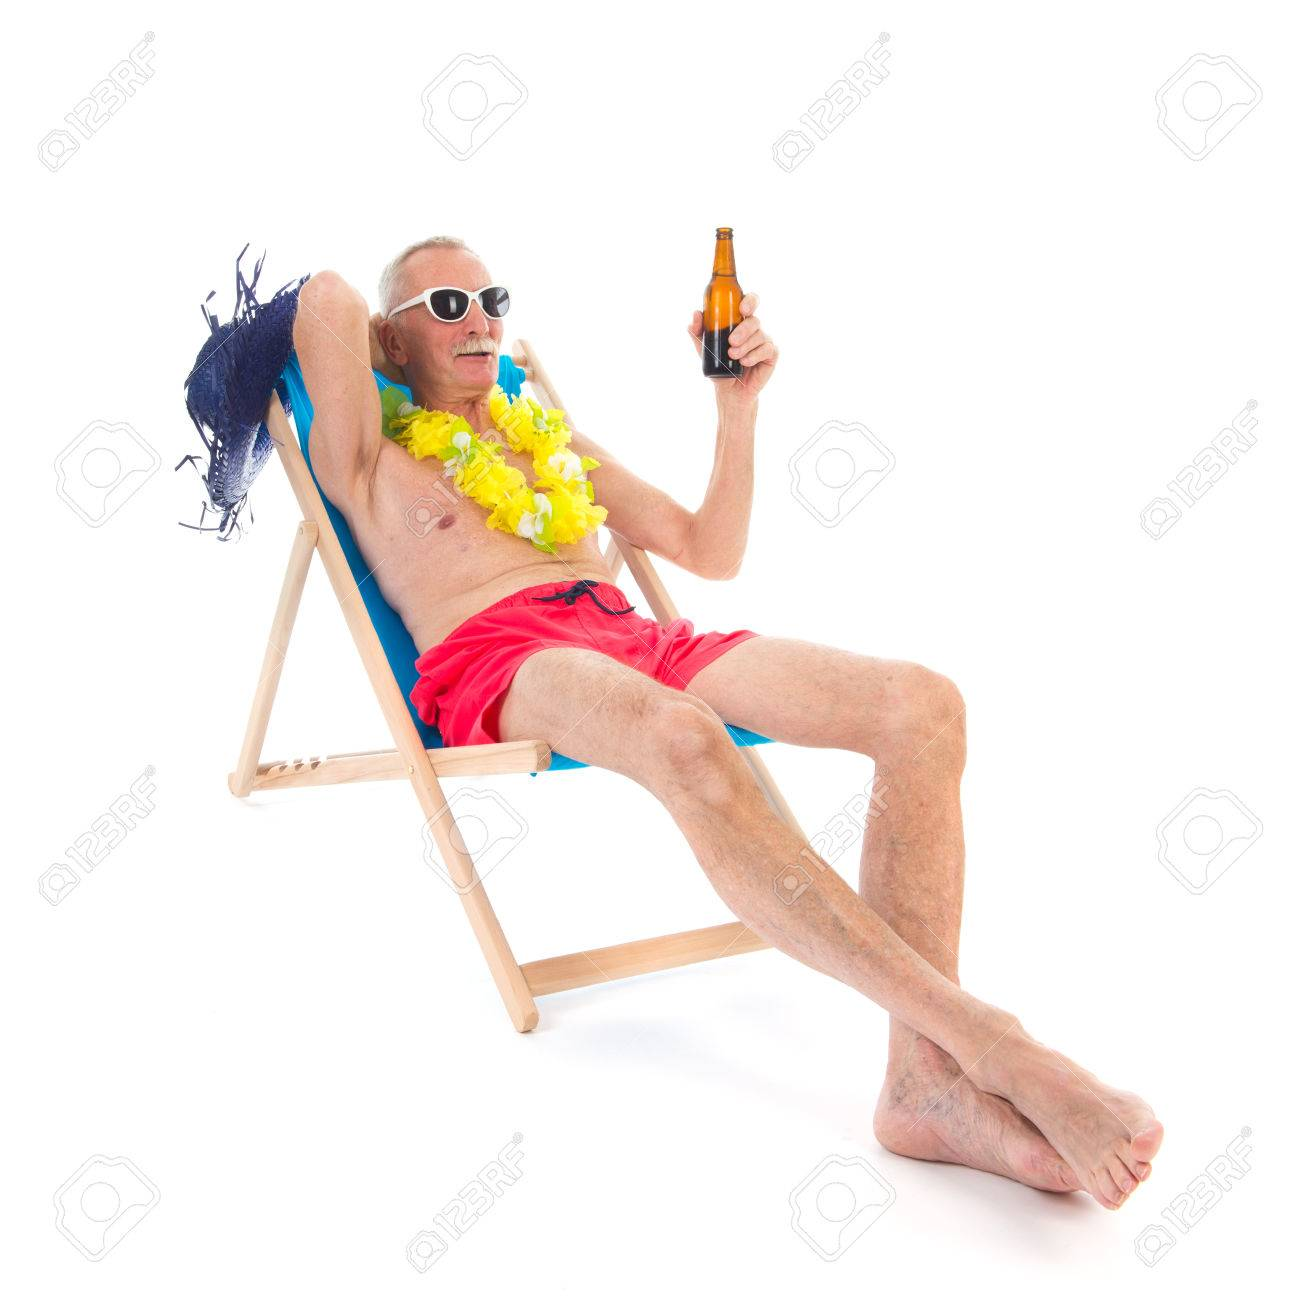 Retired Man On Vacation Sitting In Beach Chair Drinking Beer Banco De Imagens Royalty Free Ilustracoes Imagens E Banco De Imagens Image 33244537